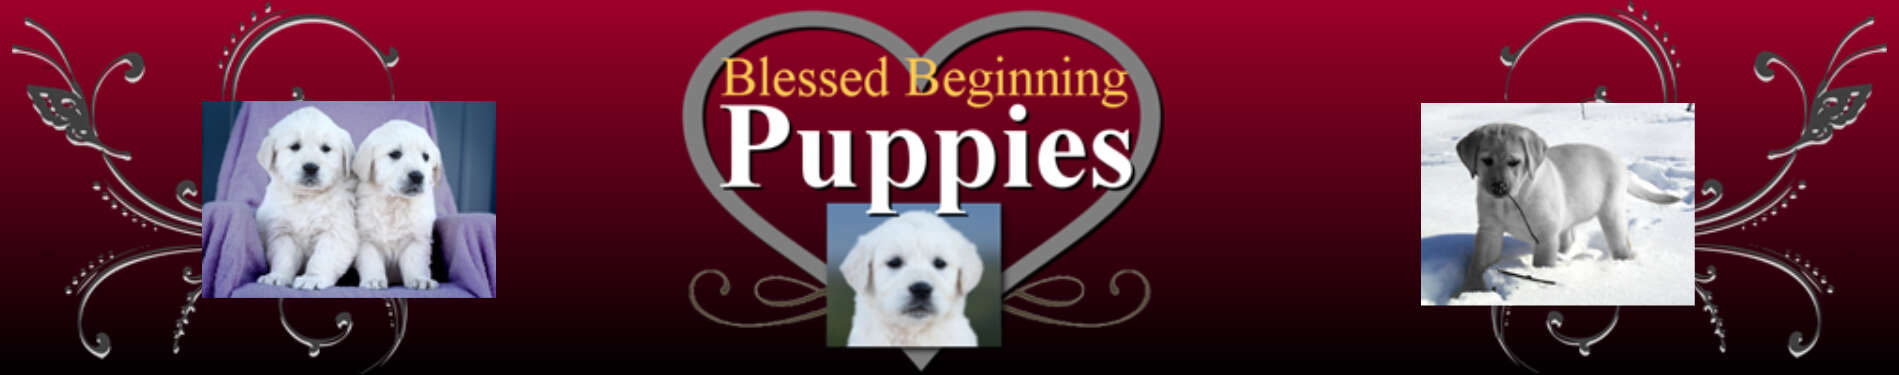 BLESSED BEGINNING PUPPIES